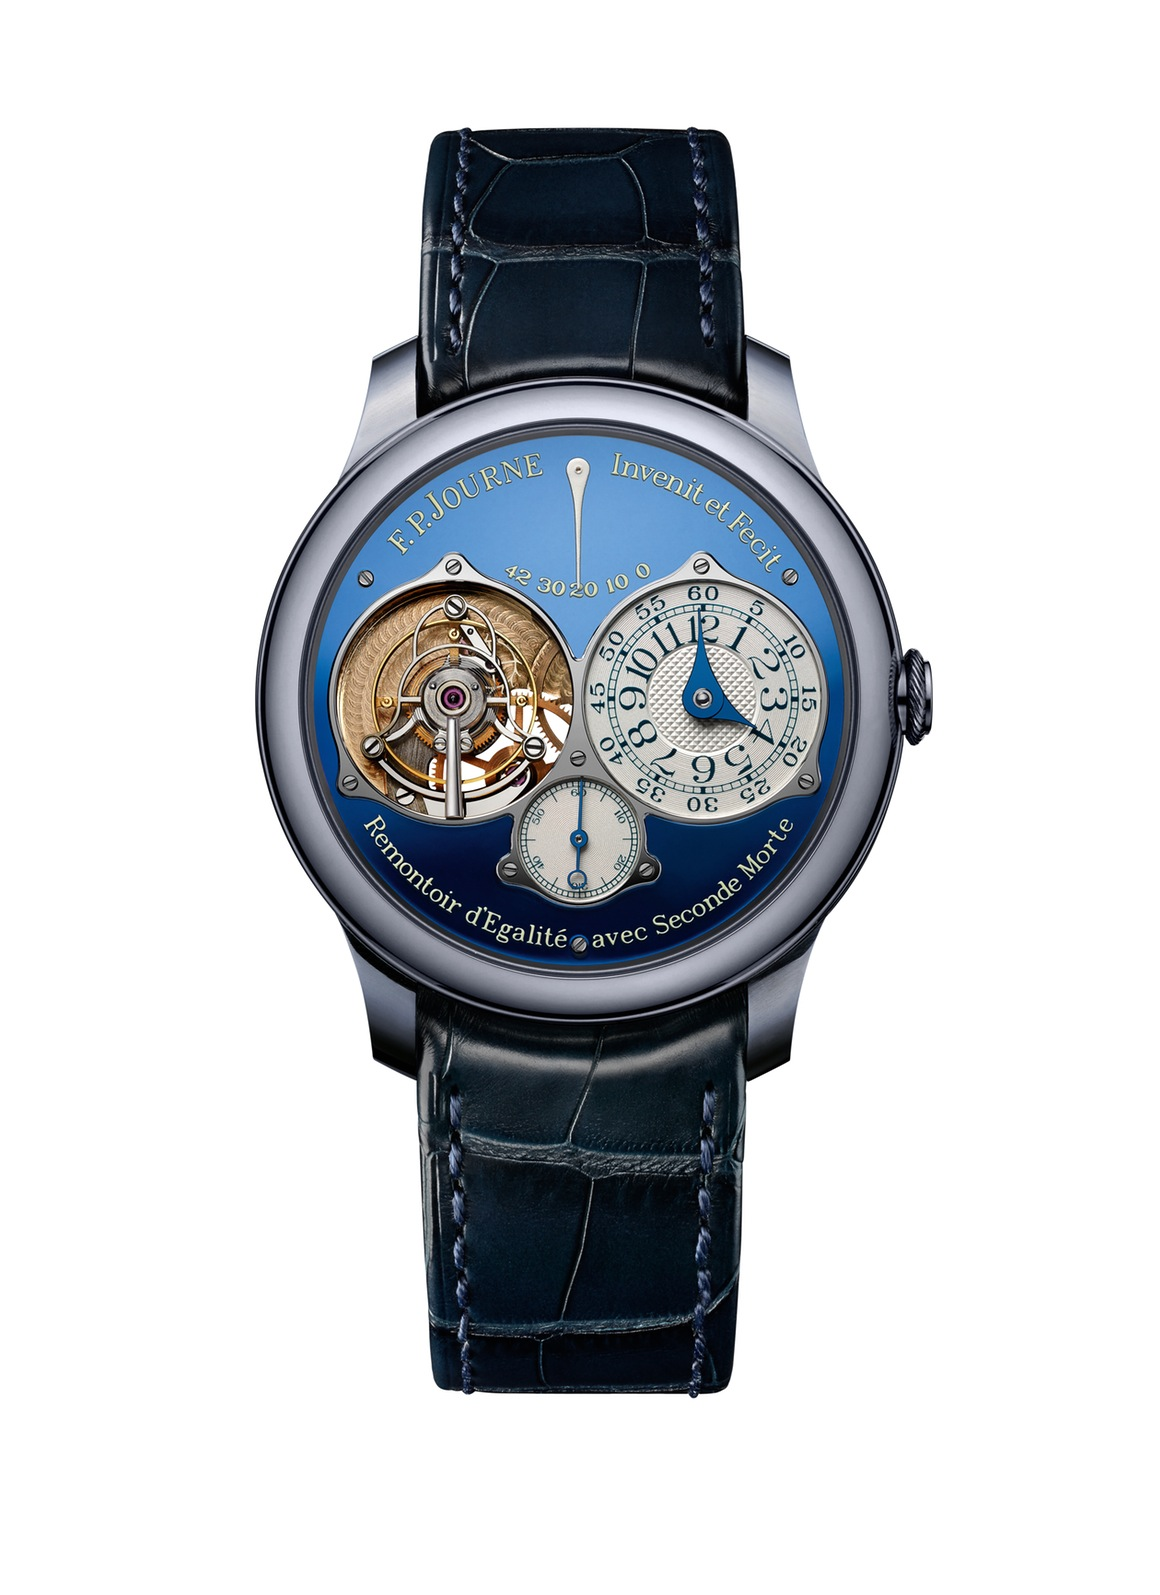 FPJourne-Tourbillon-Souverain-Bleu-only-watch-2015.jpg